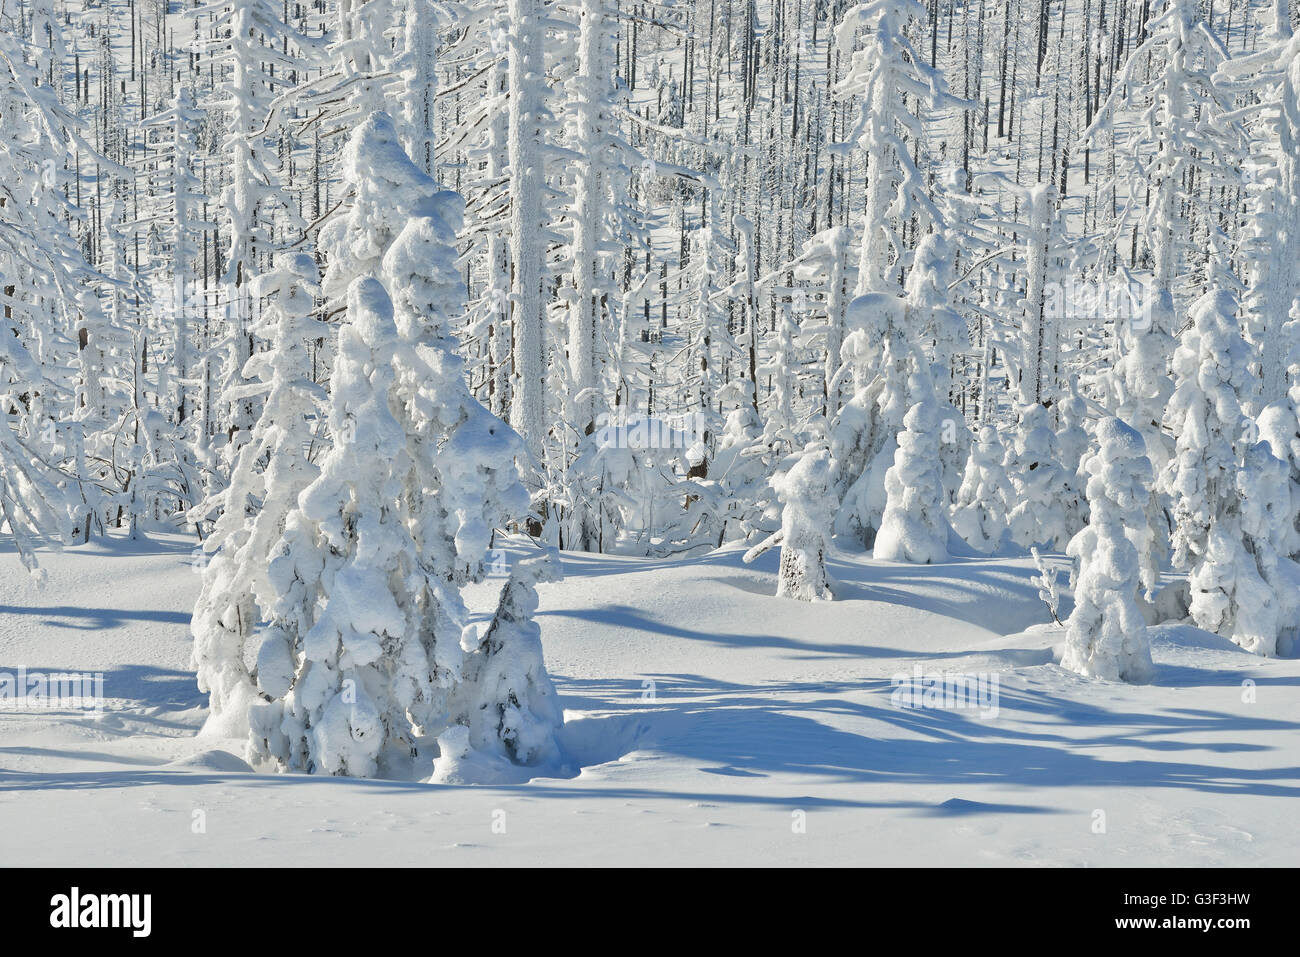 Snow Covered Conifer Forest in the Winter, Grafenau, Lusen, National Park Bavarian Forest, Bavaria, Germany - Stock Image